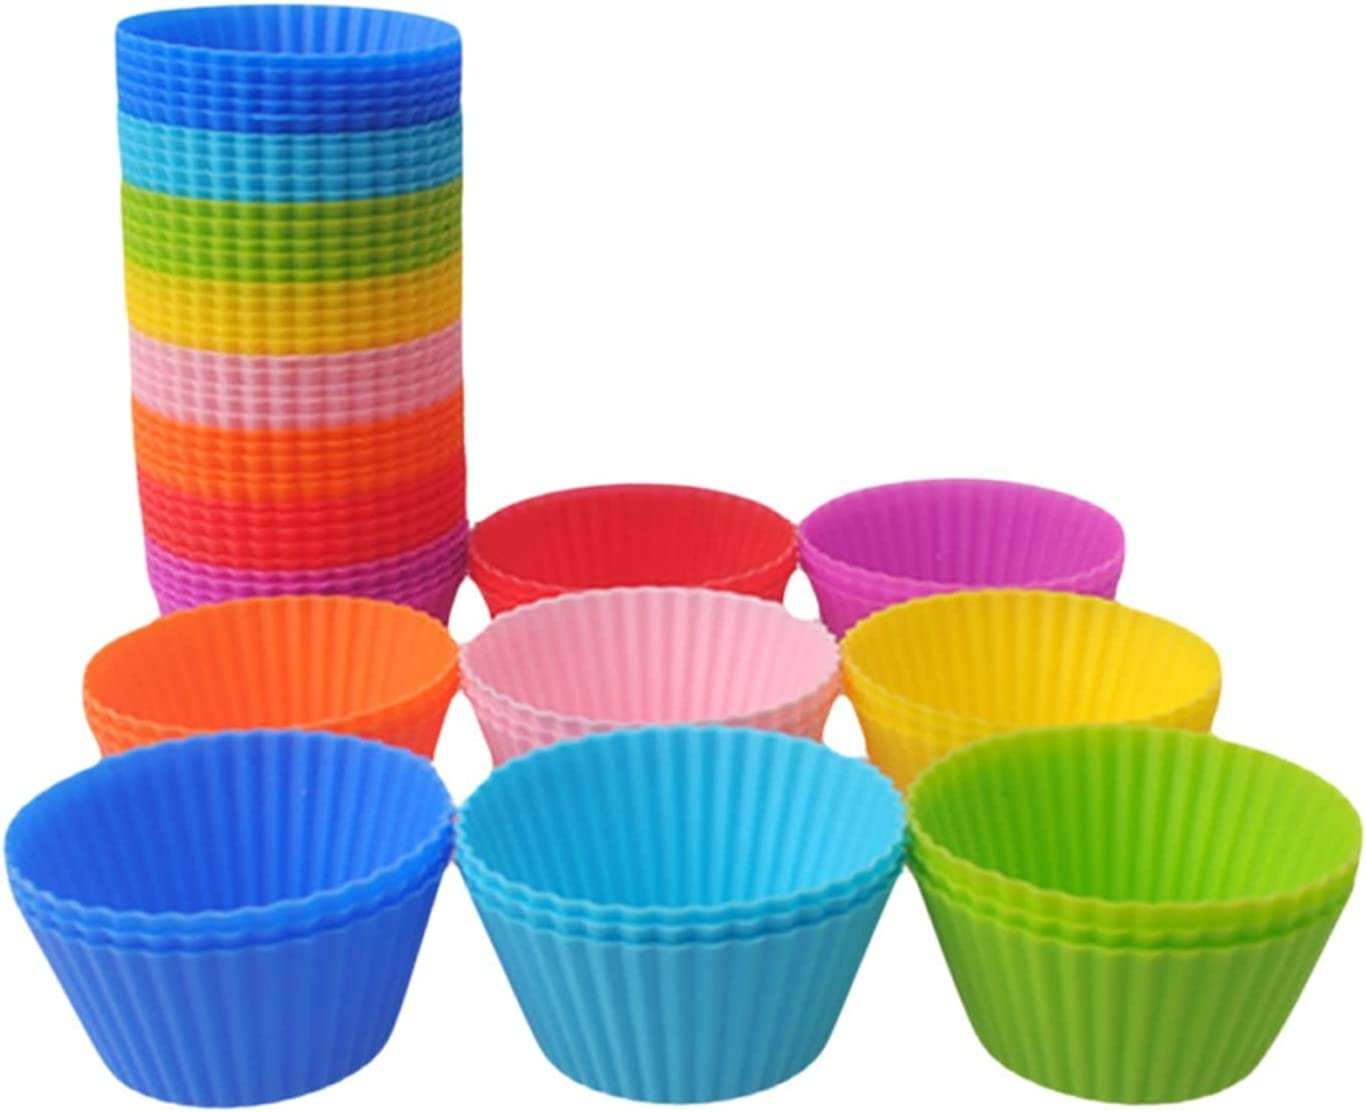 Pastry Cup 20 12 Max 52% OFF 8Pcs Silicone online shop Baking Mu Liner Mold Cake